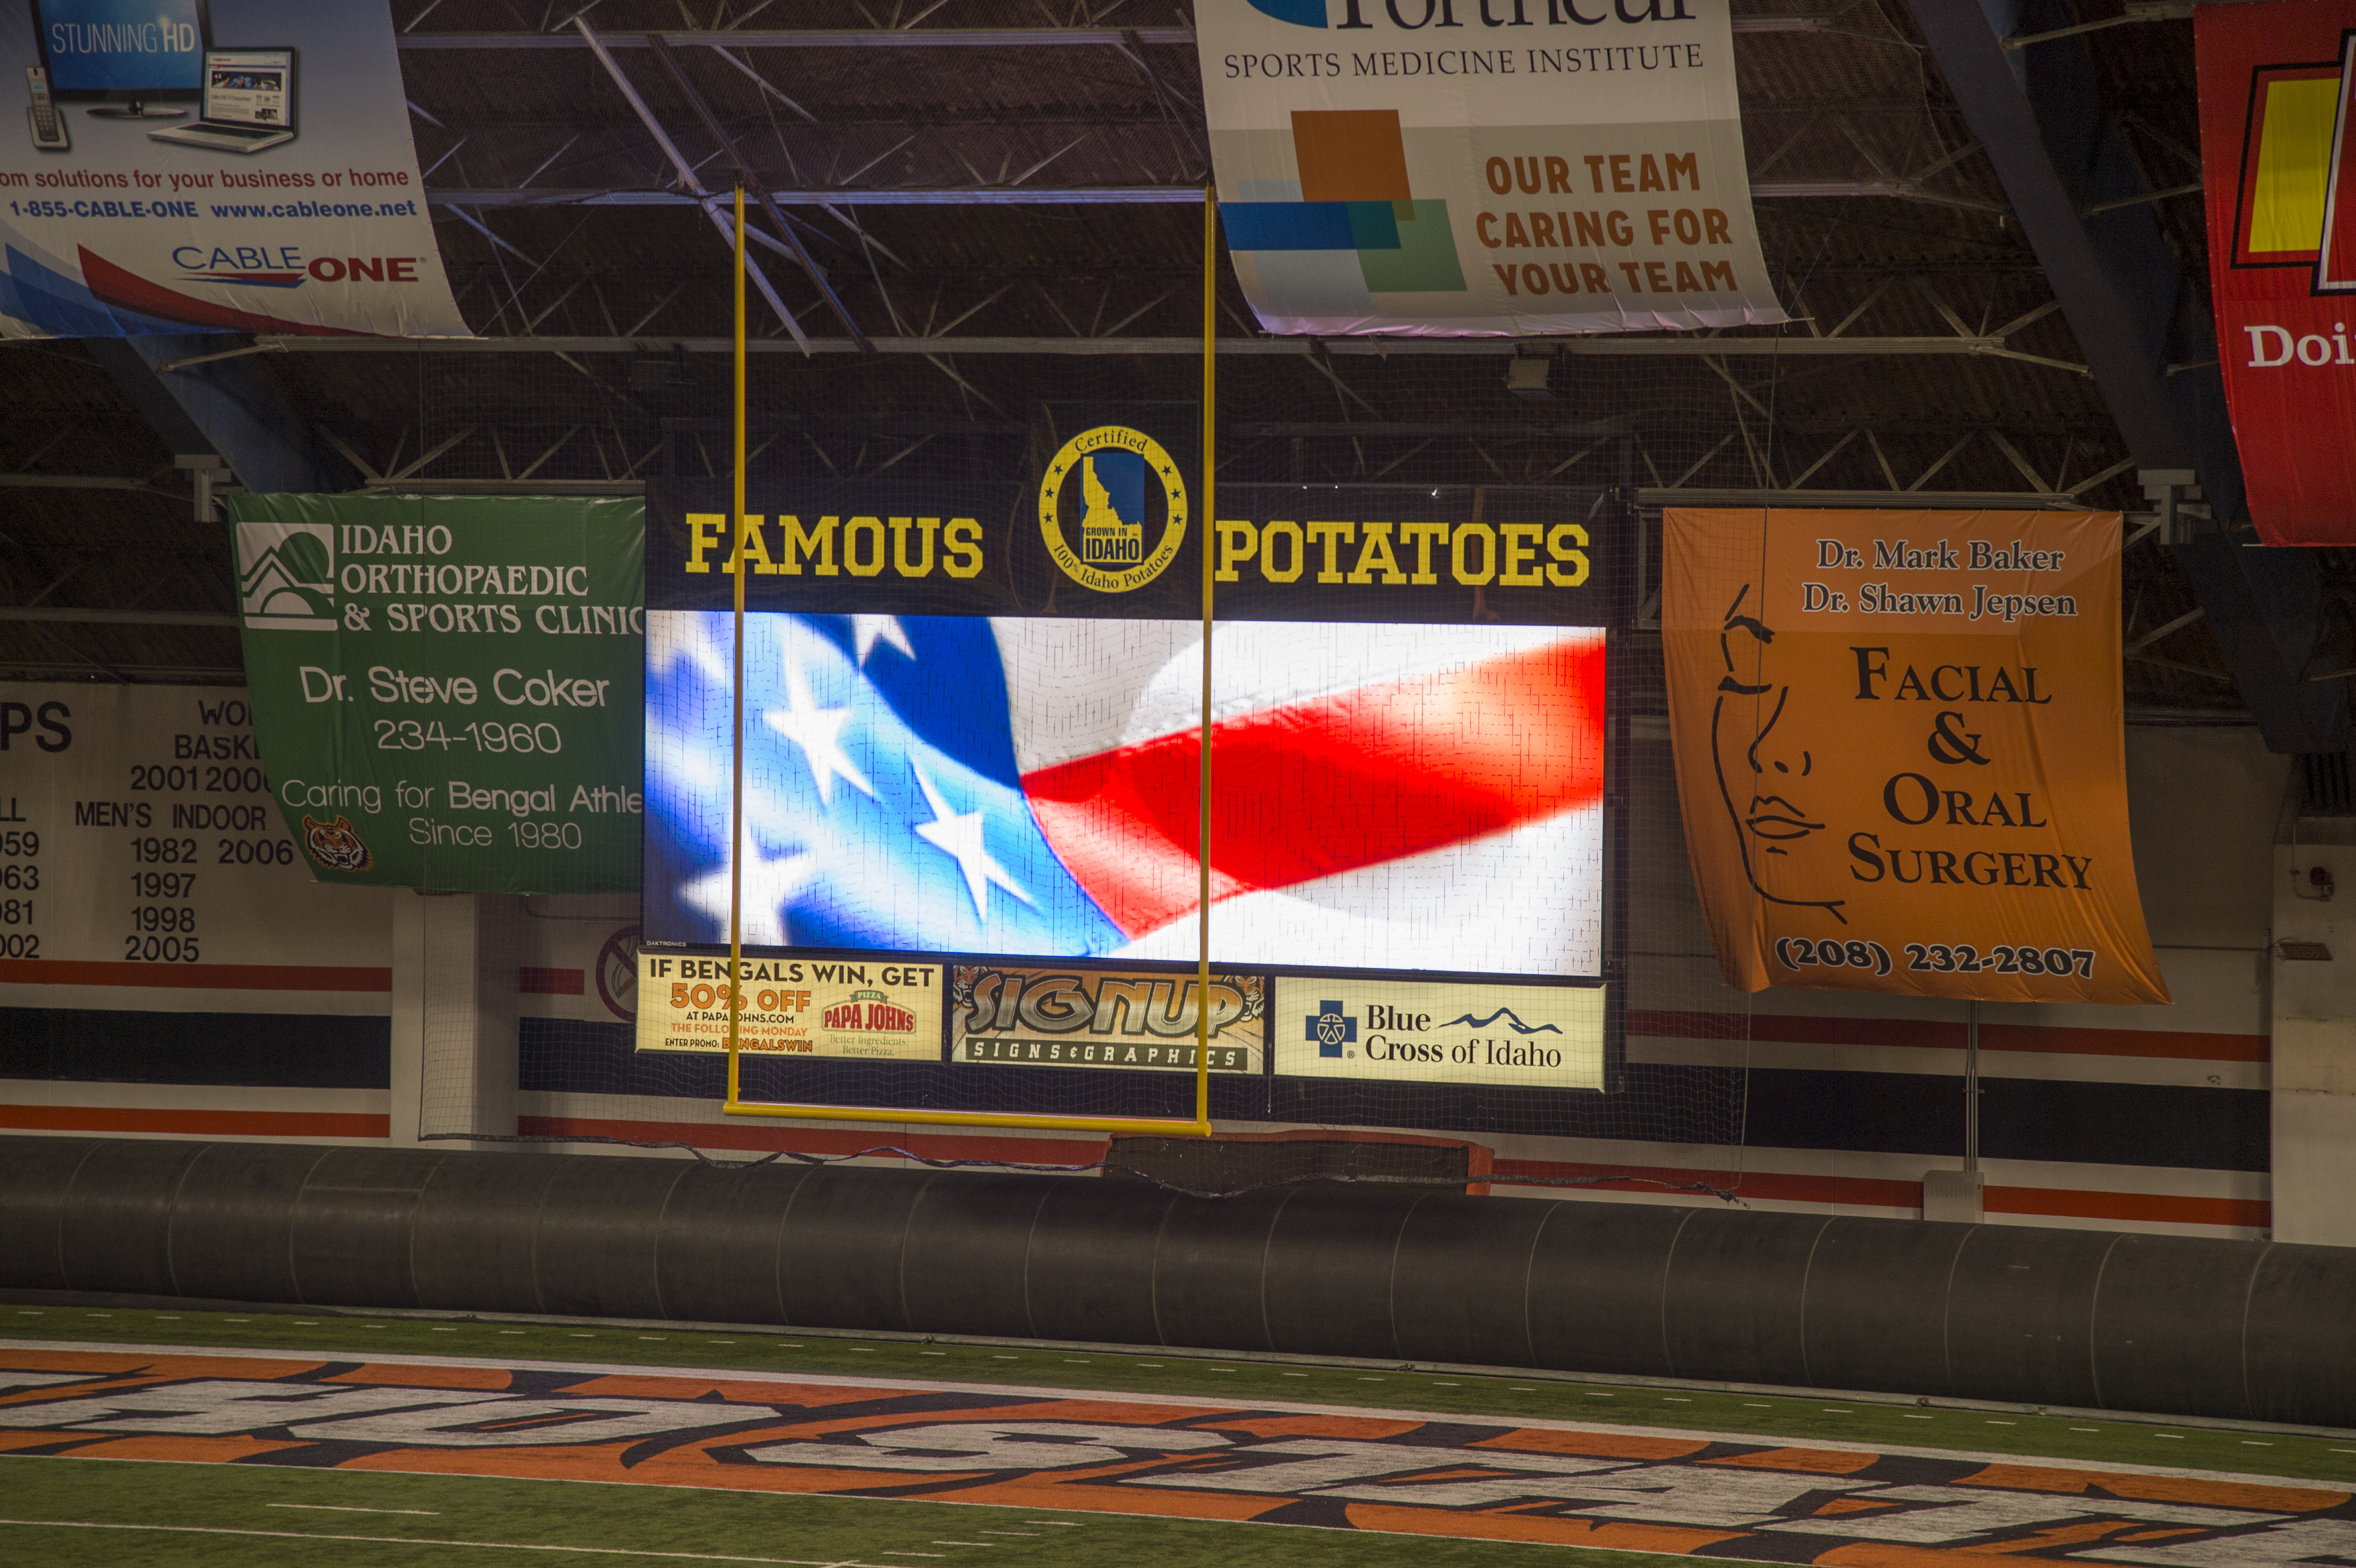 Idaho State University's new Holt Arena video board almost online; American Falls High School gets old scoreboard